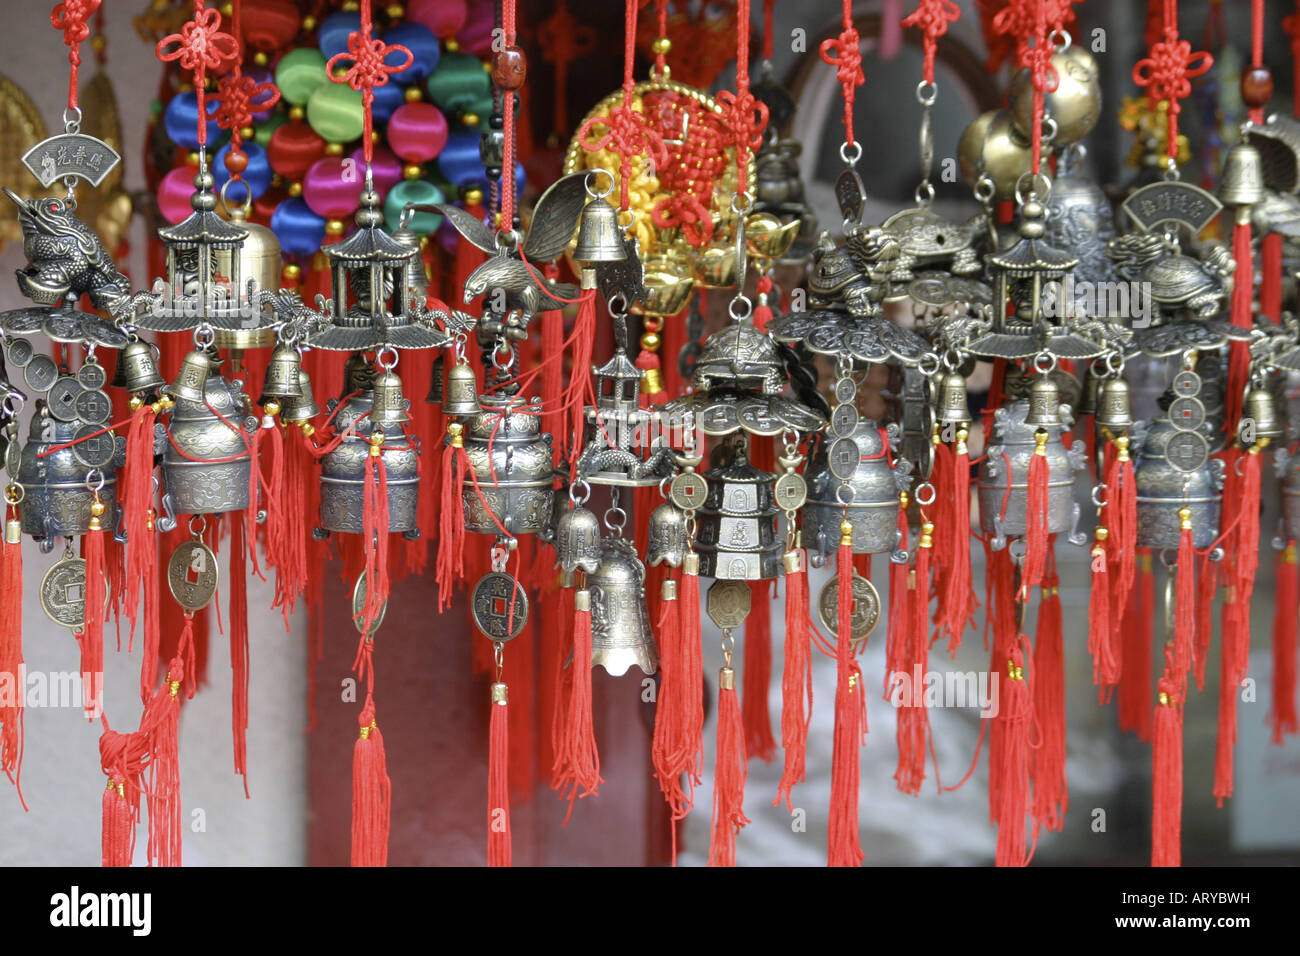 Colorful chinese ornaments adorn many storefront windows in Chinatown, downtown Honolulu, Oahu Stock Photo